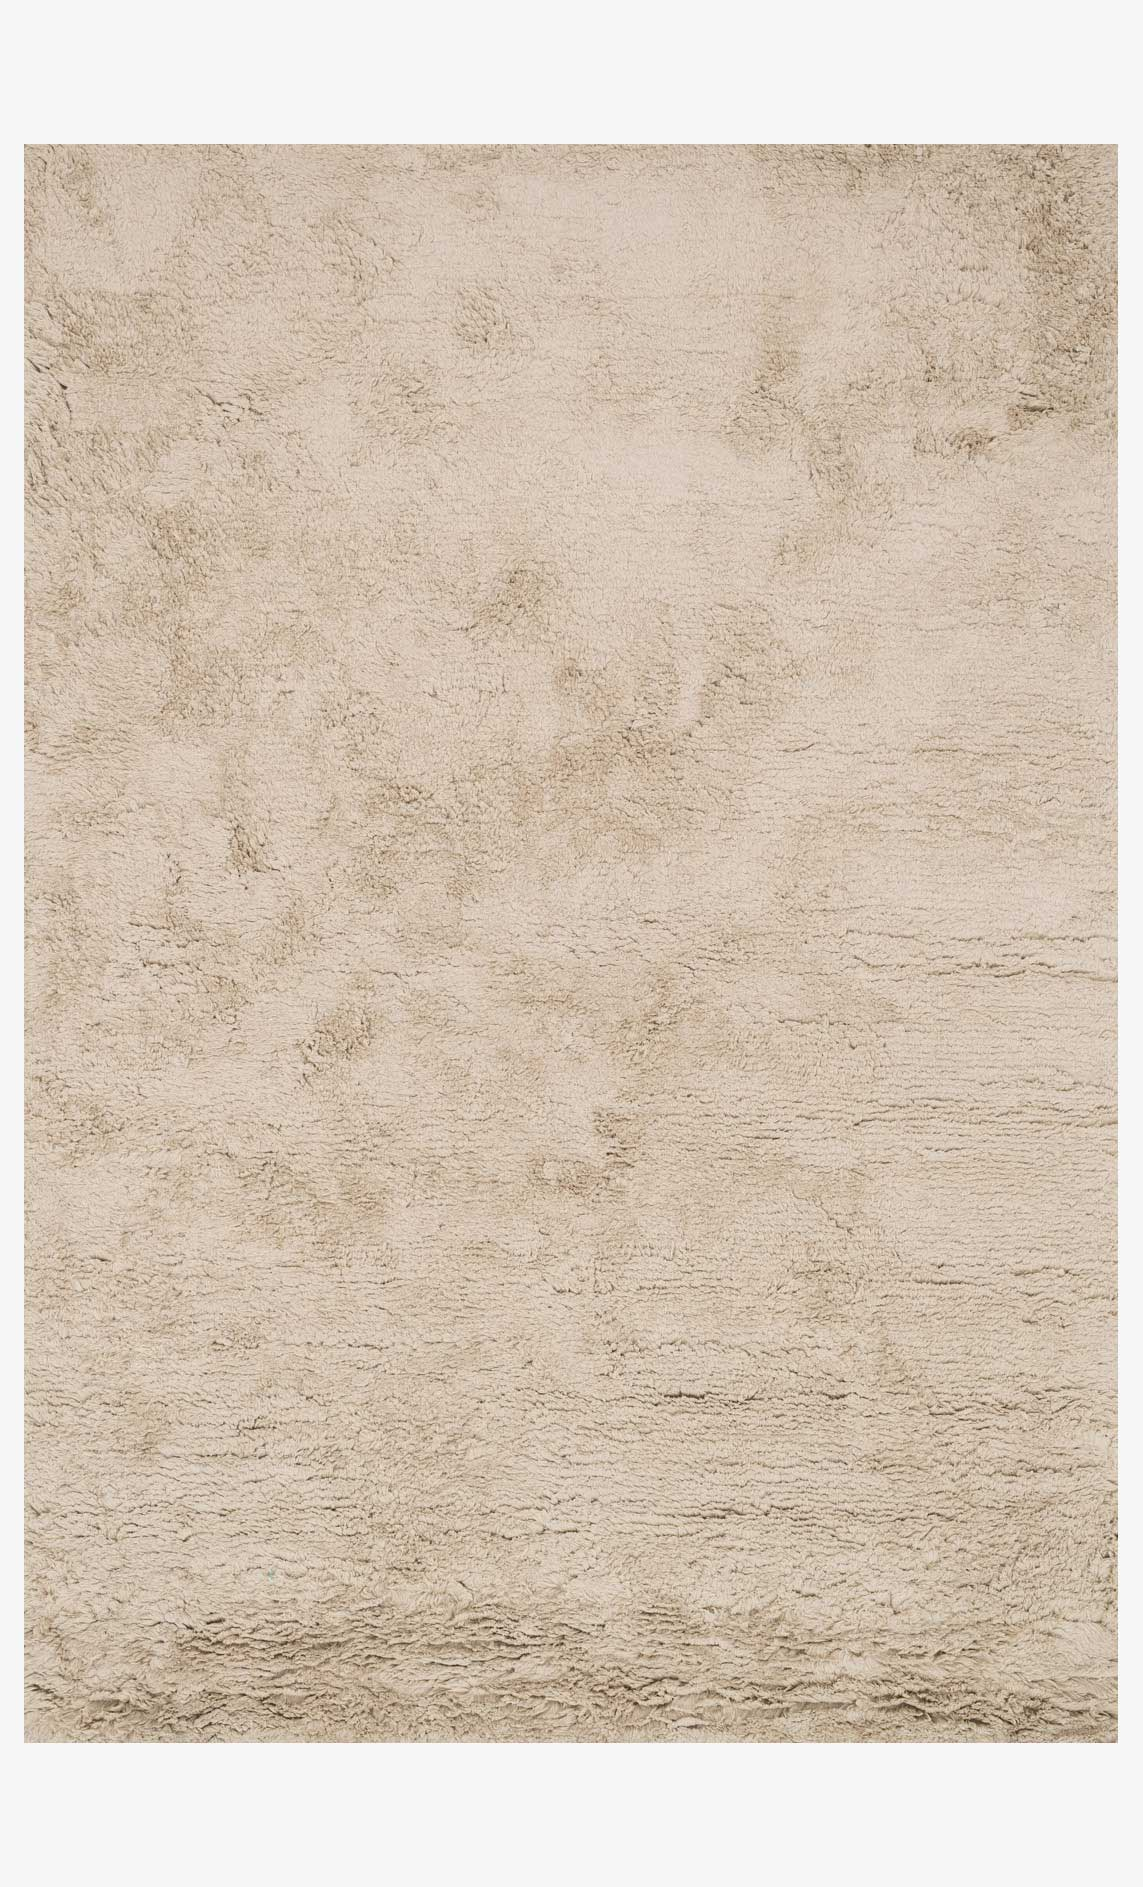 MH-01 BEIGE